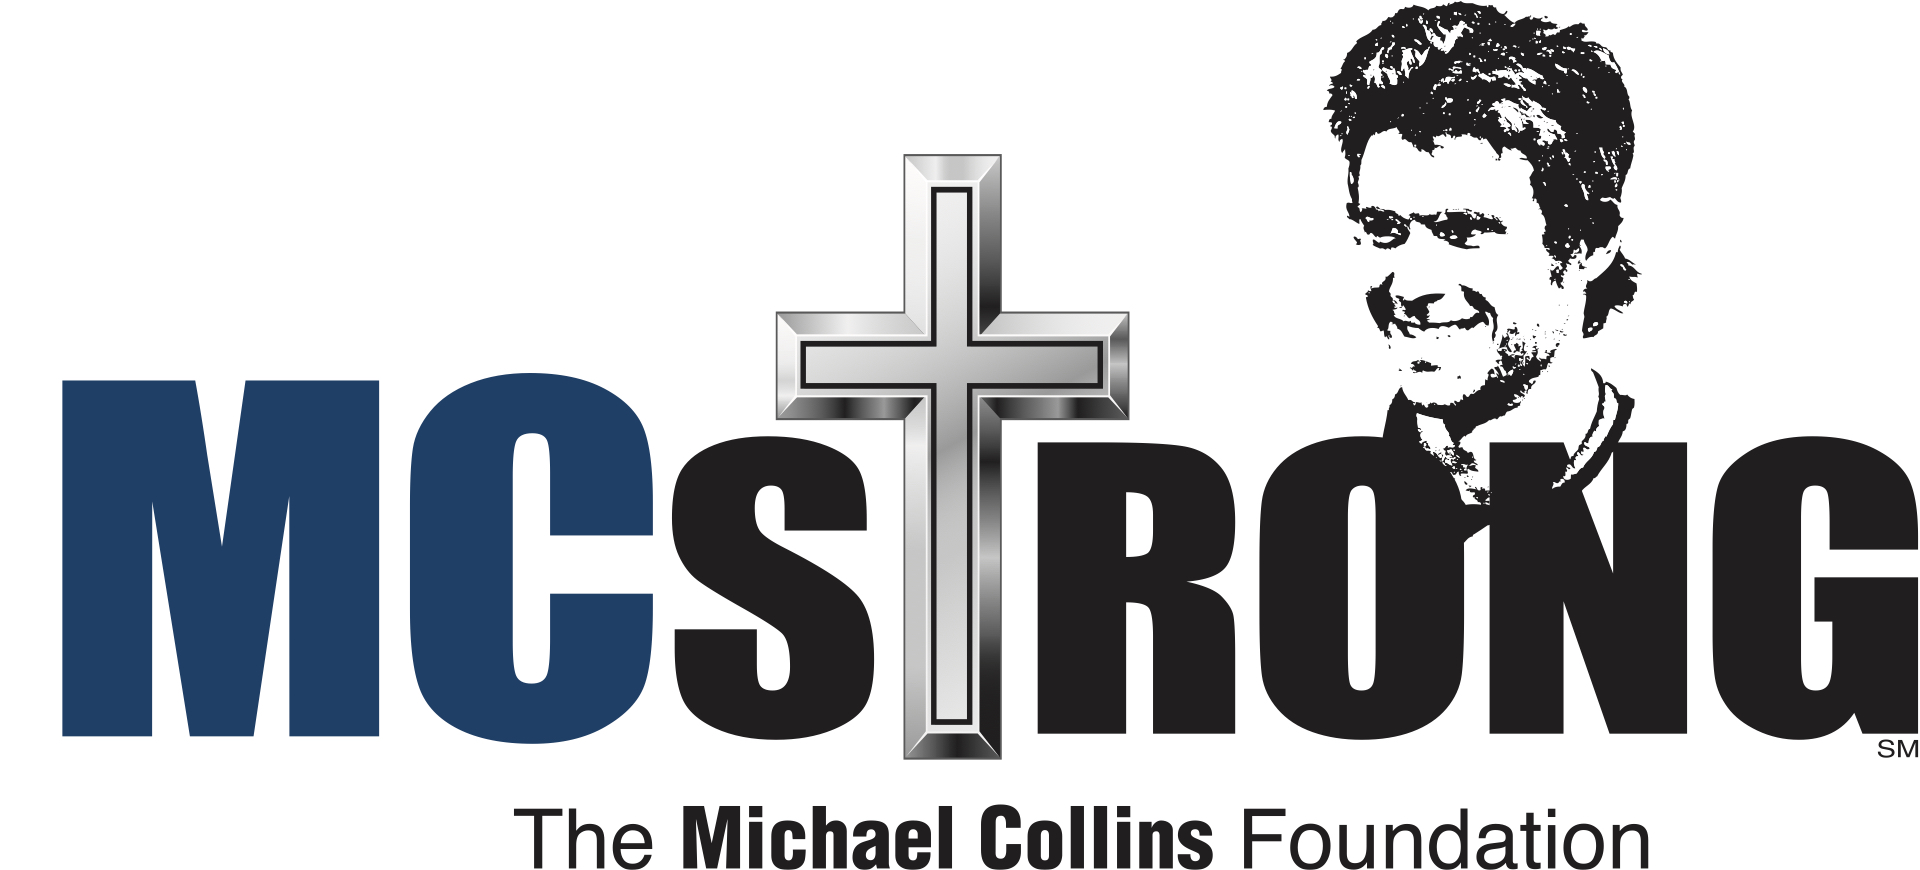 Par Sponsor - Michael Collins Foundation.jpg